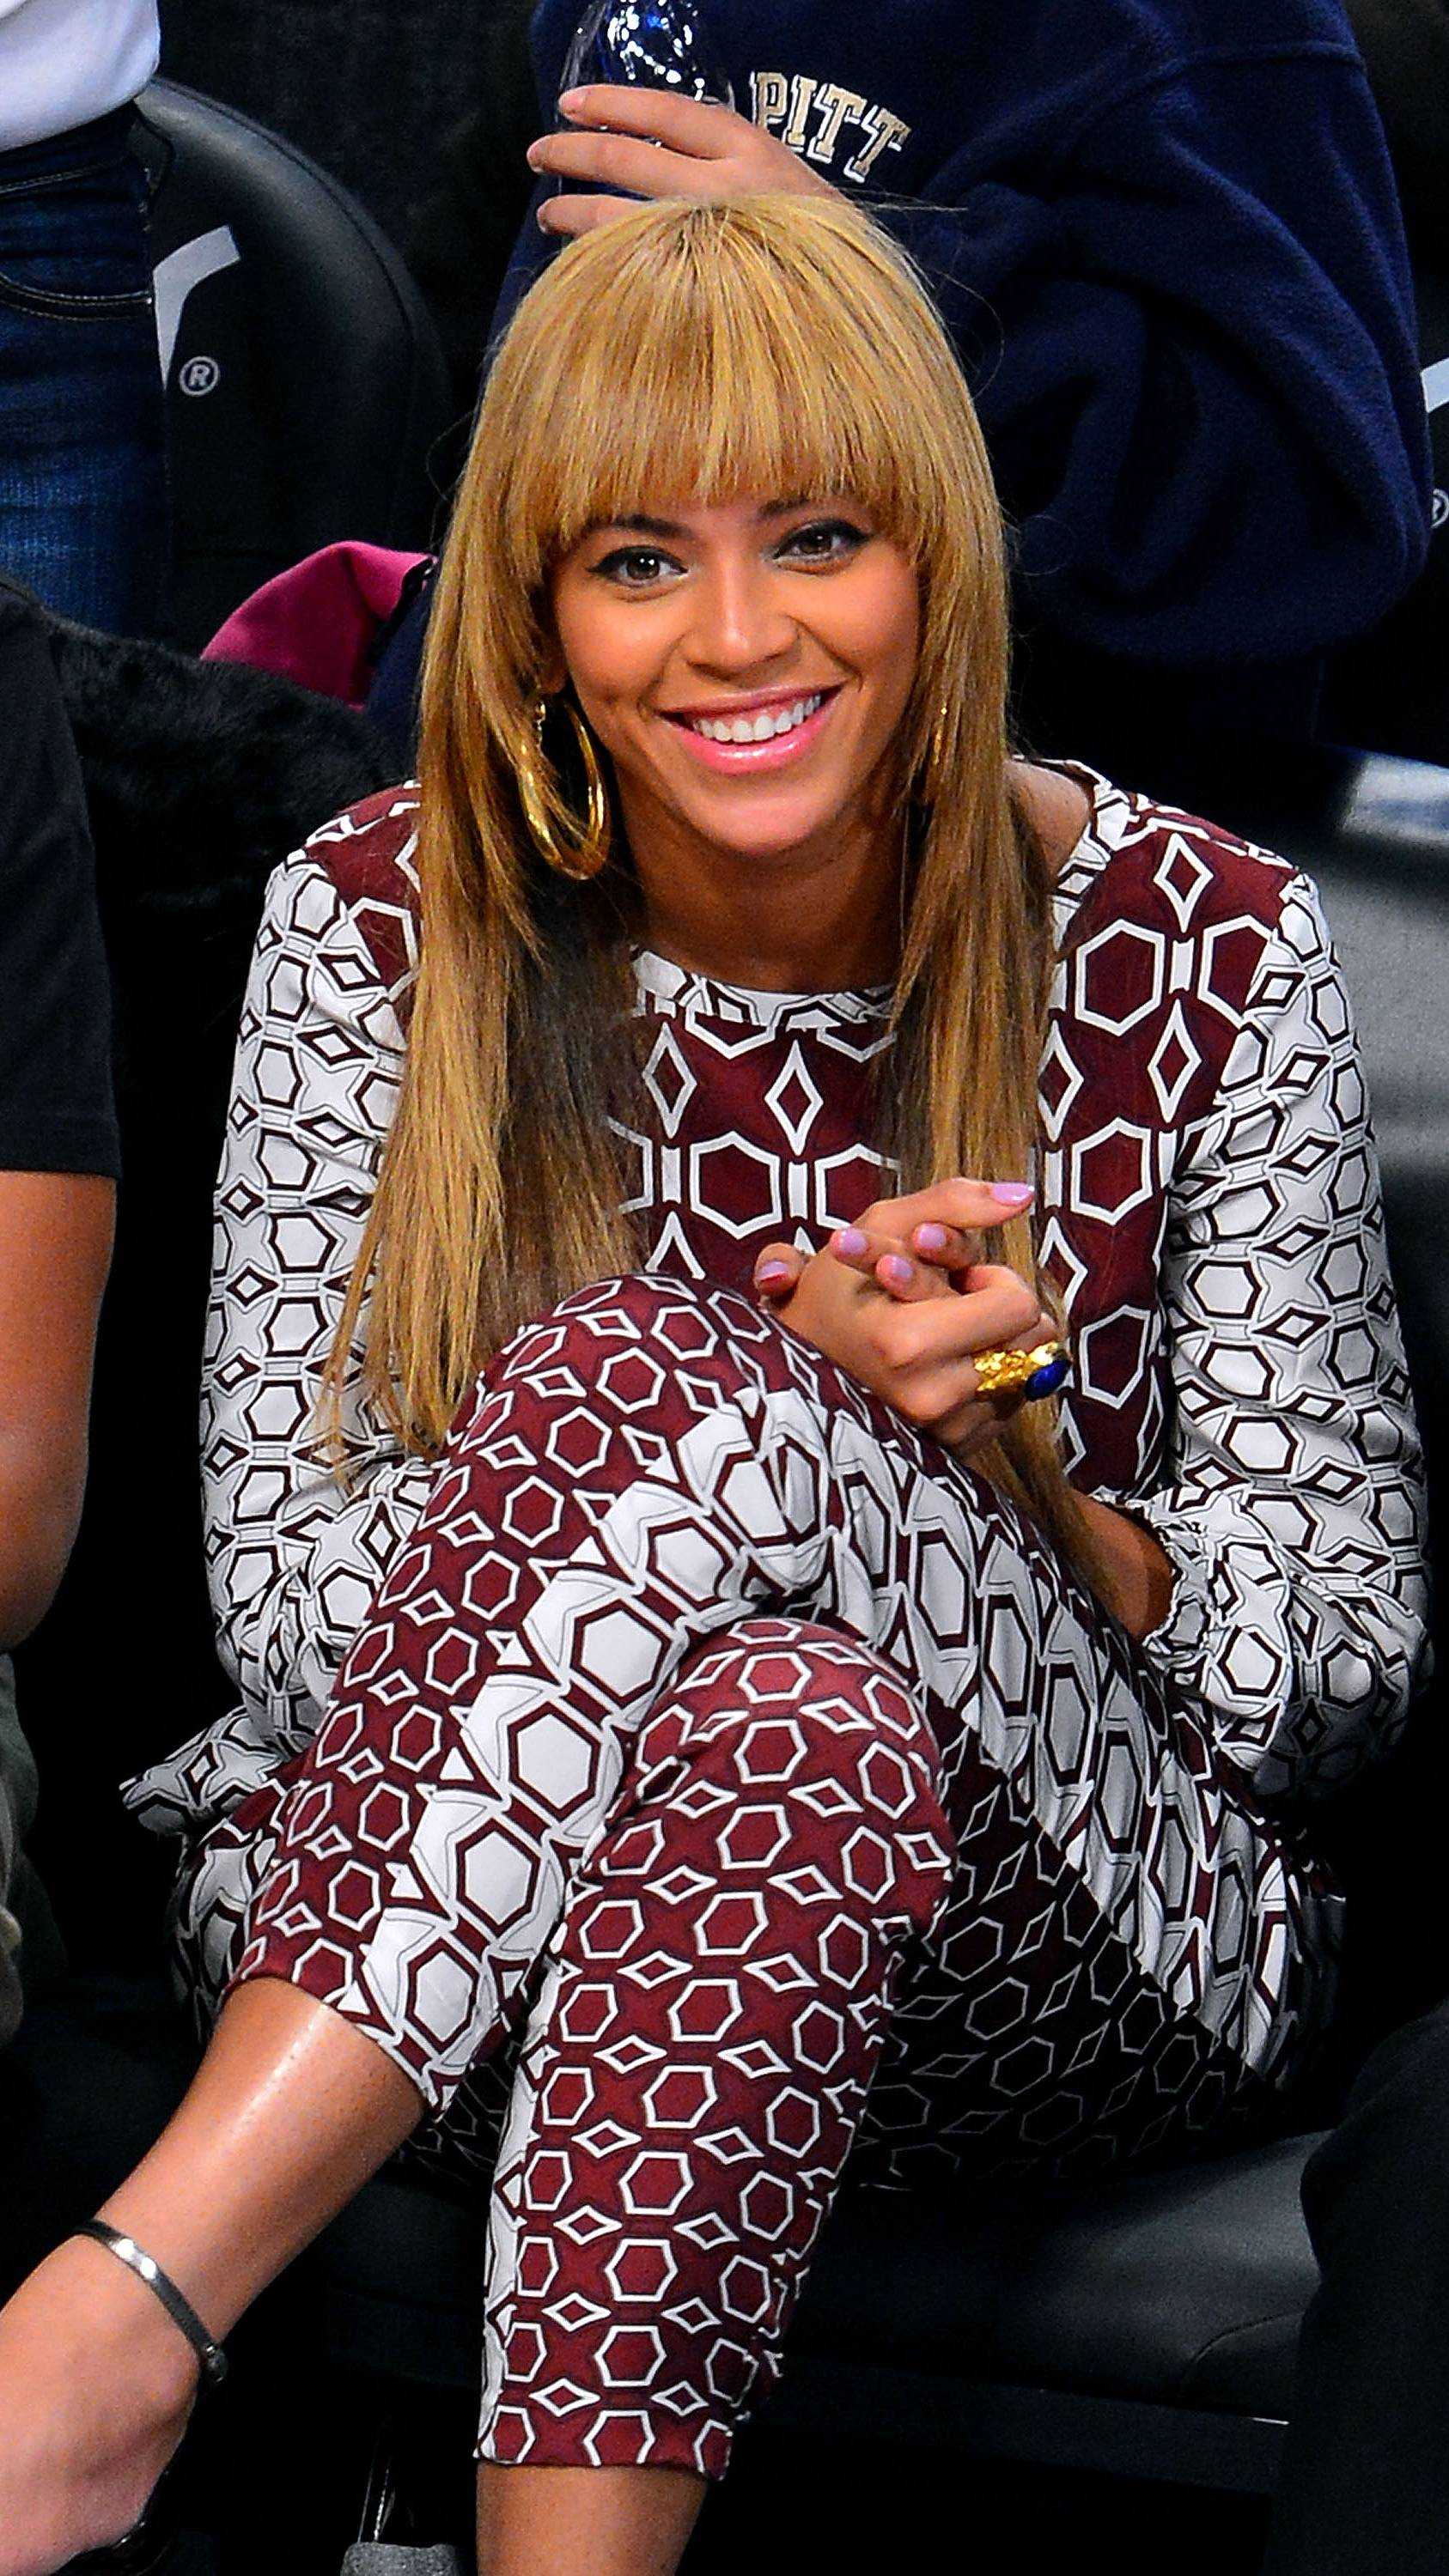 Beyonc? - Beyonc? is beautiful, talented, smart and motivated, but that doesn't mean she can't take a joke. Even though Beyonc? caught on to Ashton's punking, that doesn't mean J.B. can't get one over on her.